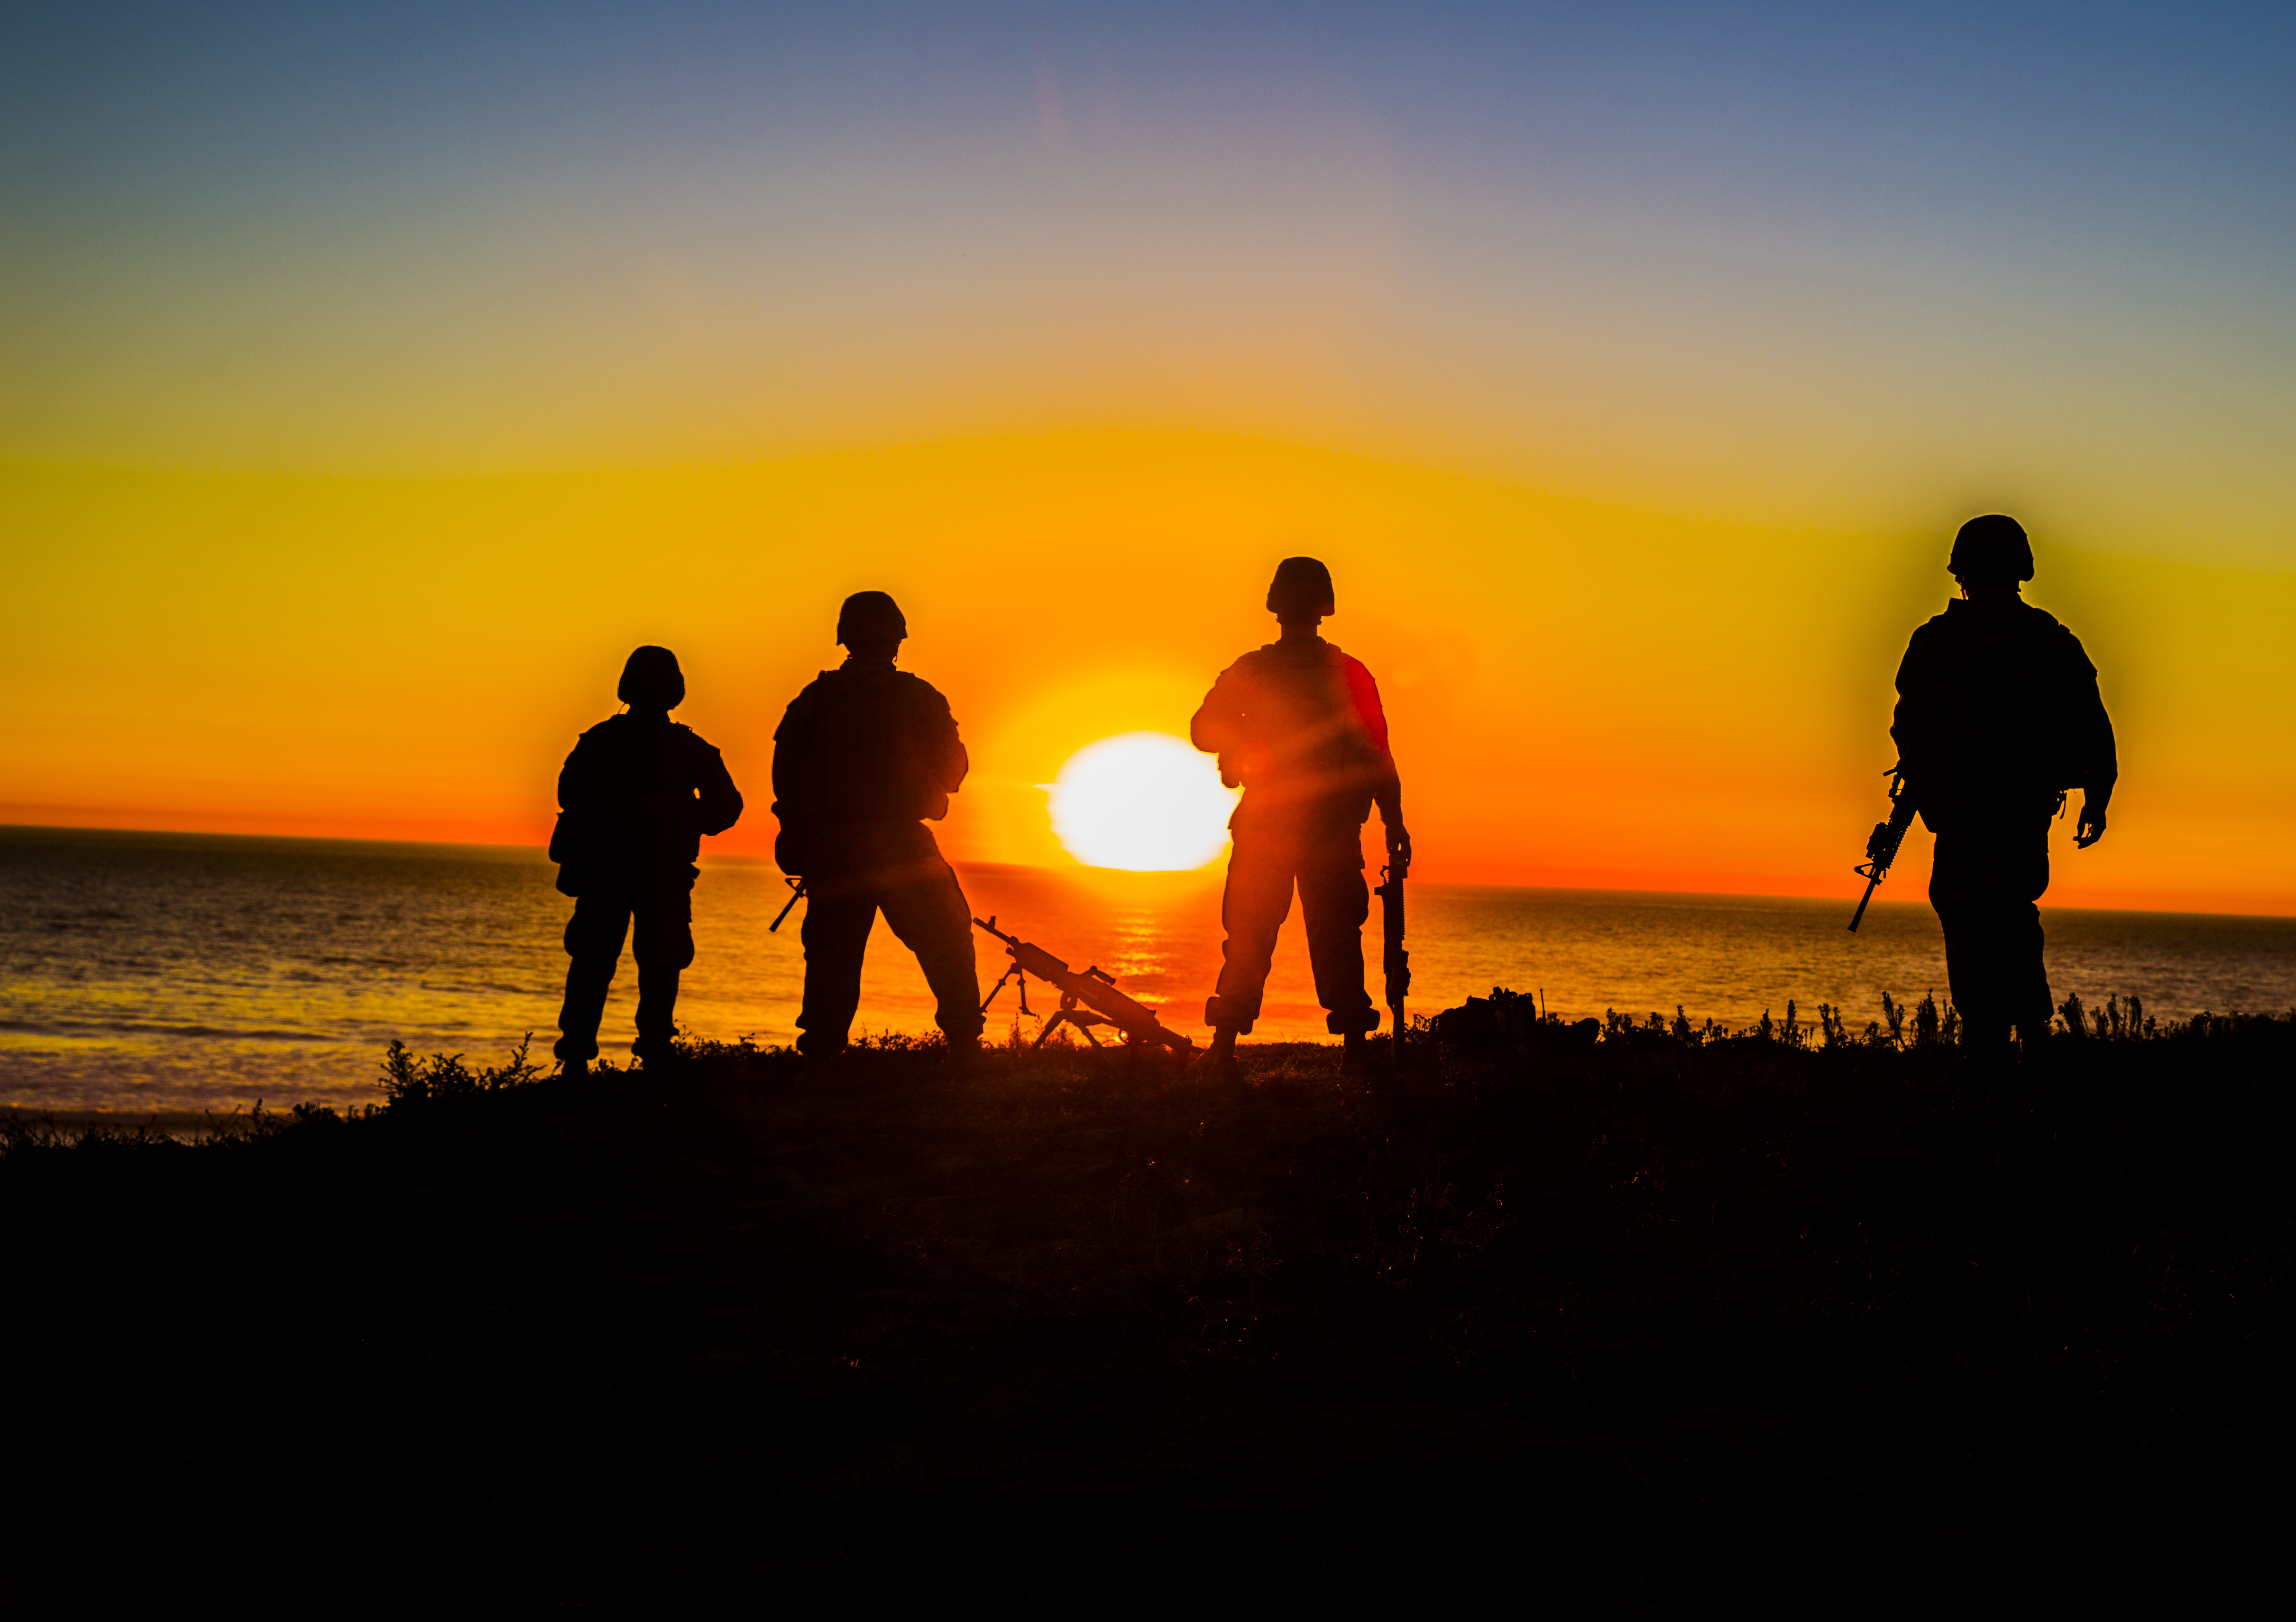 U.S. Marines with Combat Logistics Battalion 11, Headquarters Regiment, 1st Marine Logistics Group, overlook the beach during a field exercise at Camp Pendleton, Calif., Dec. 12, 2017. U.S. Marine Corps photo by Lance Cpl. Adam Dublinske